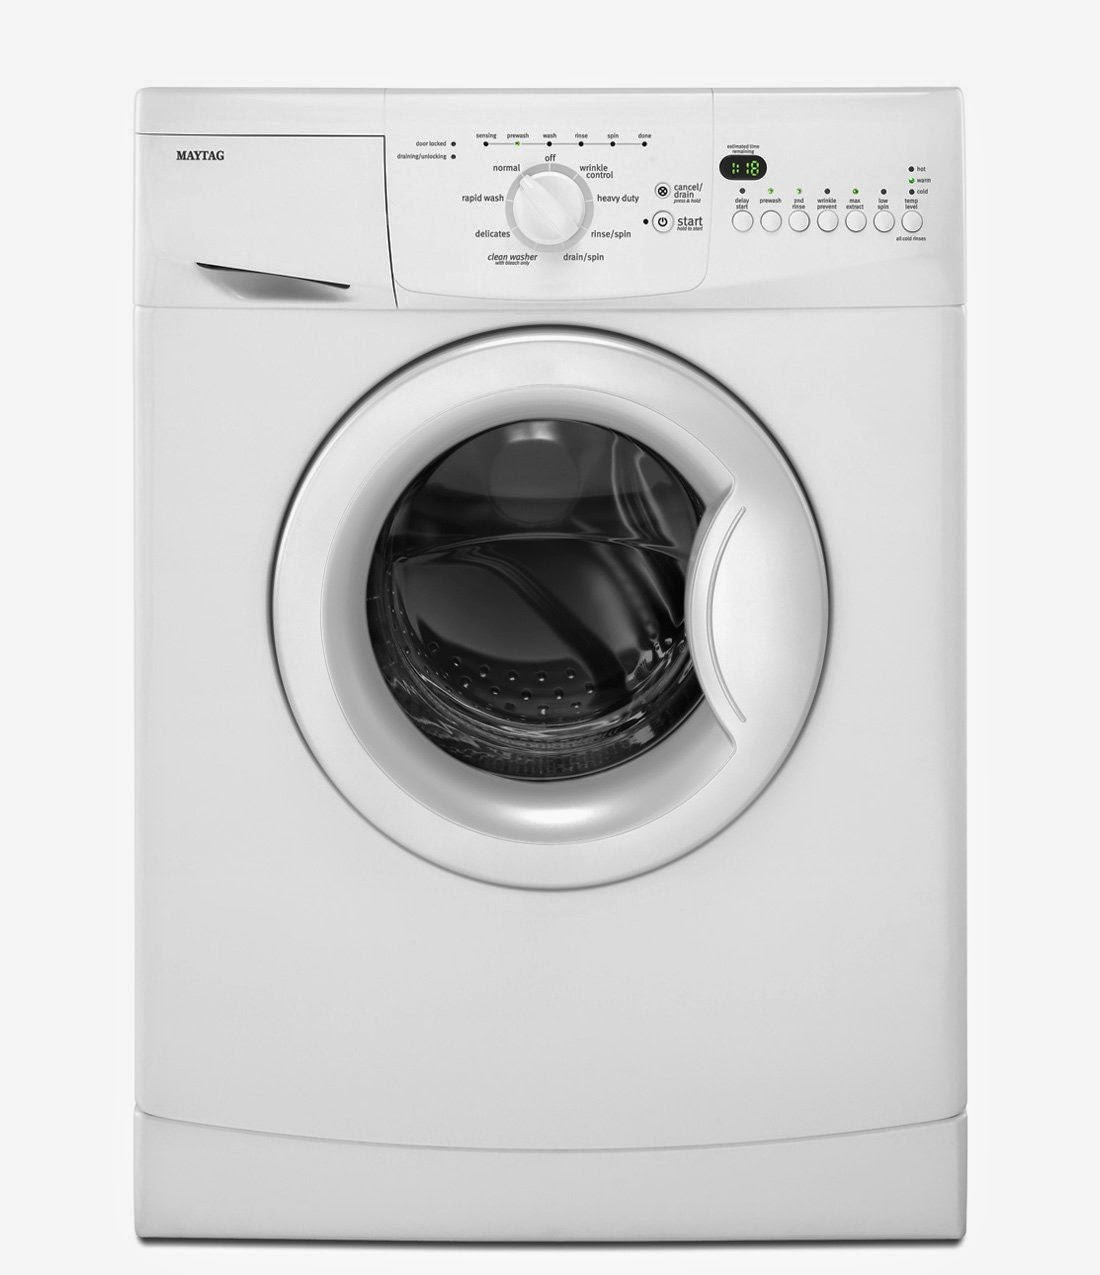 100+ [ Apartment Size Washer And Dryer Stackable ] | Blomberg Wm ...